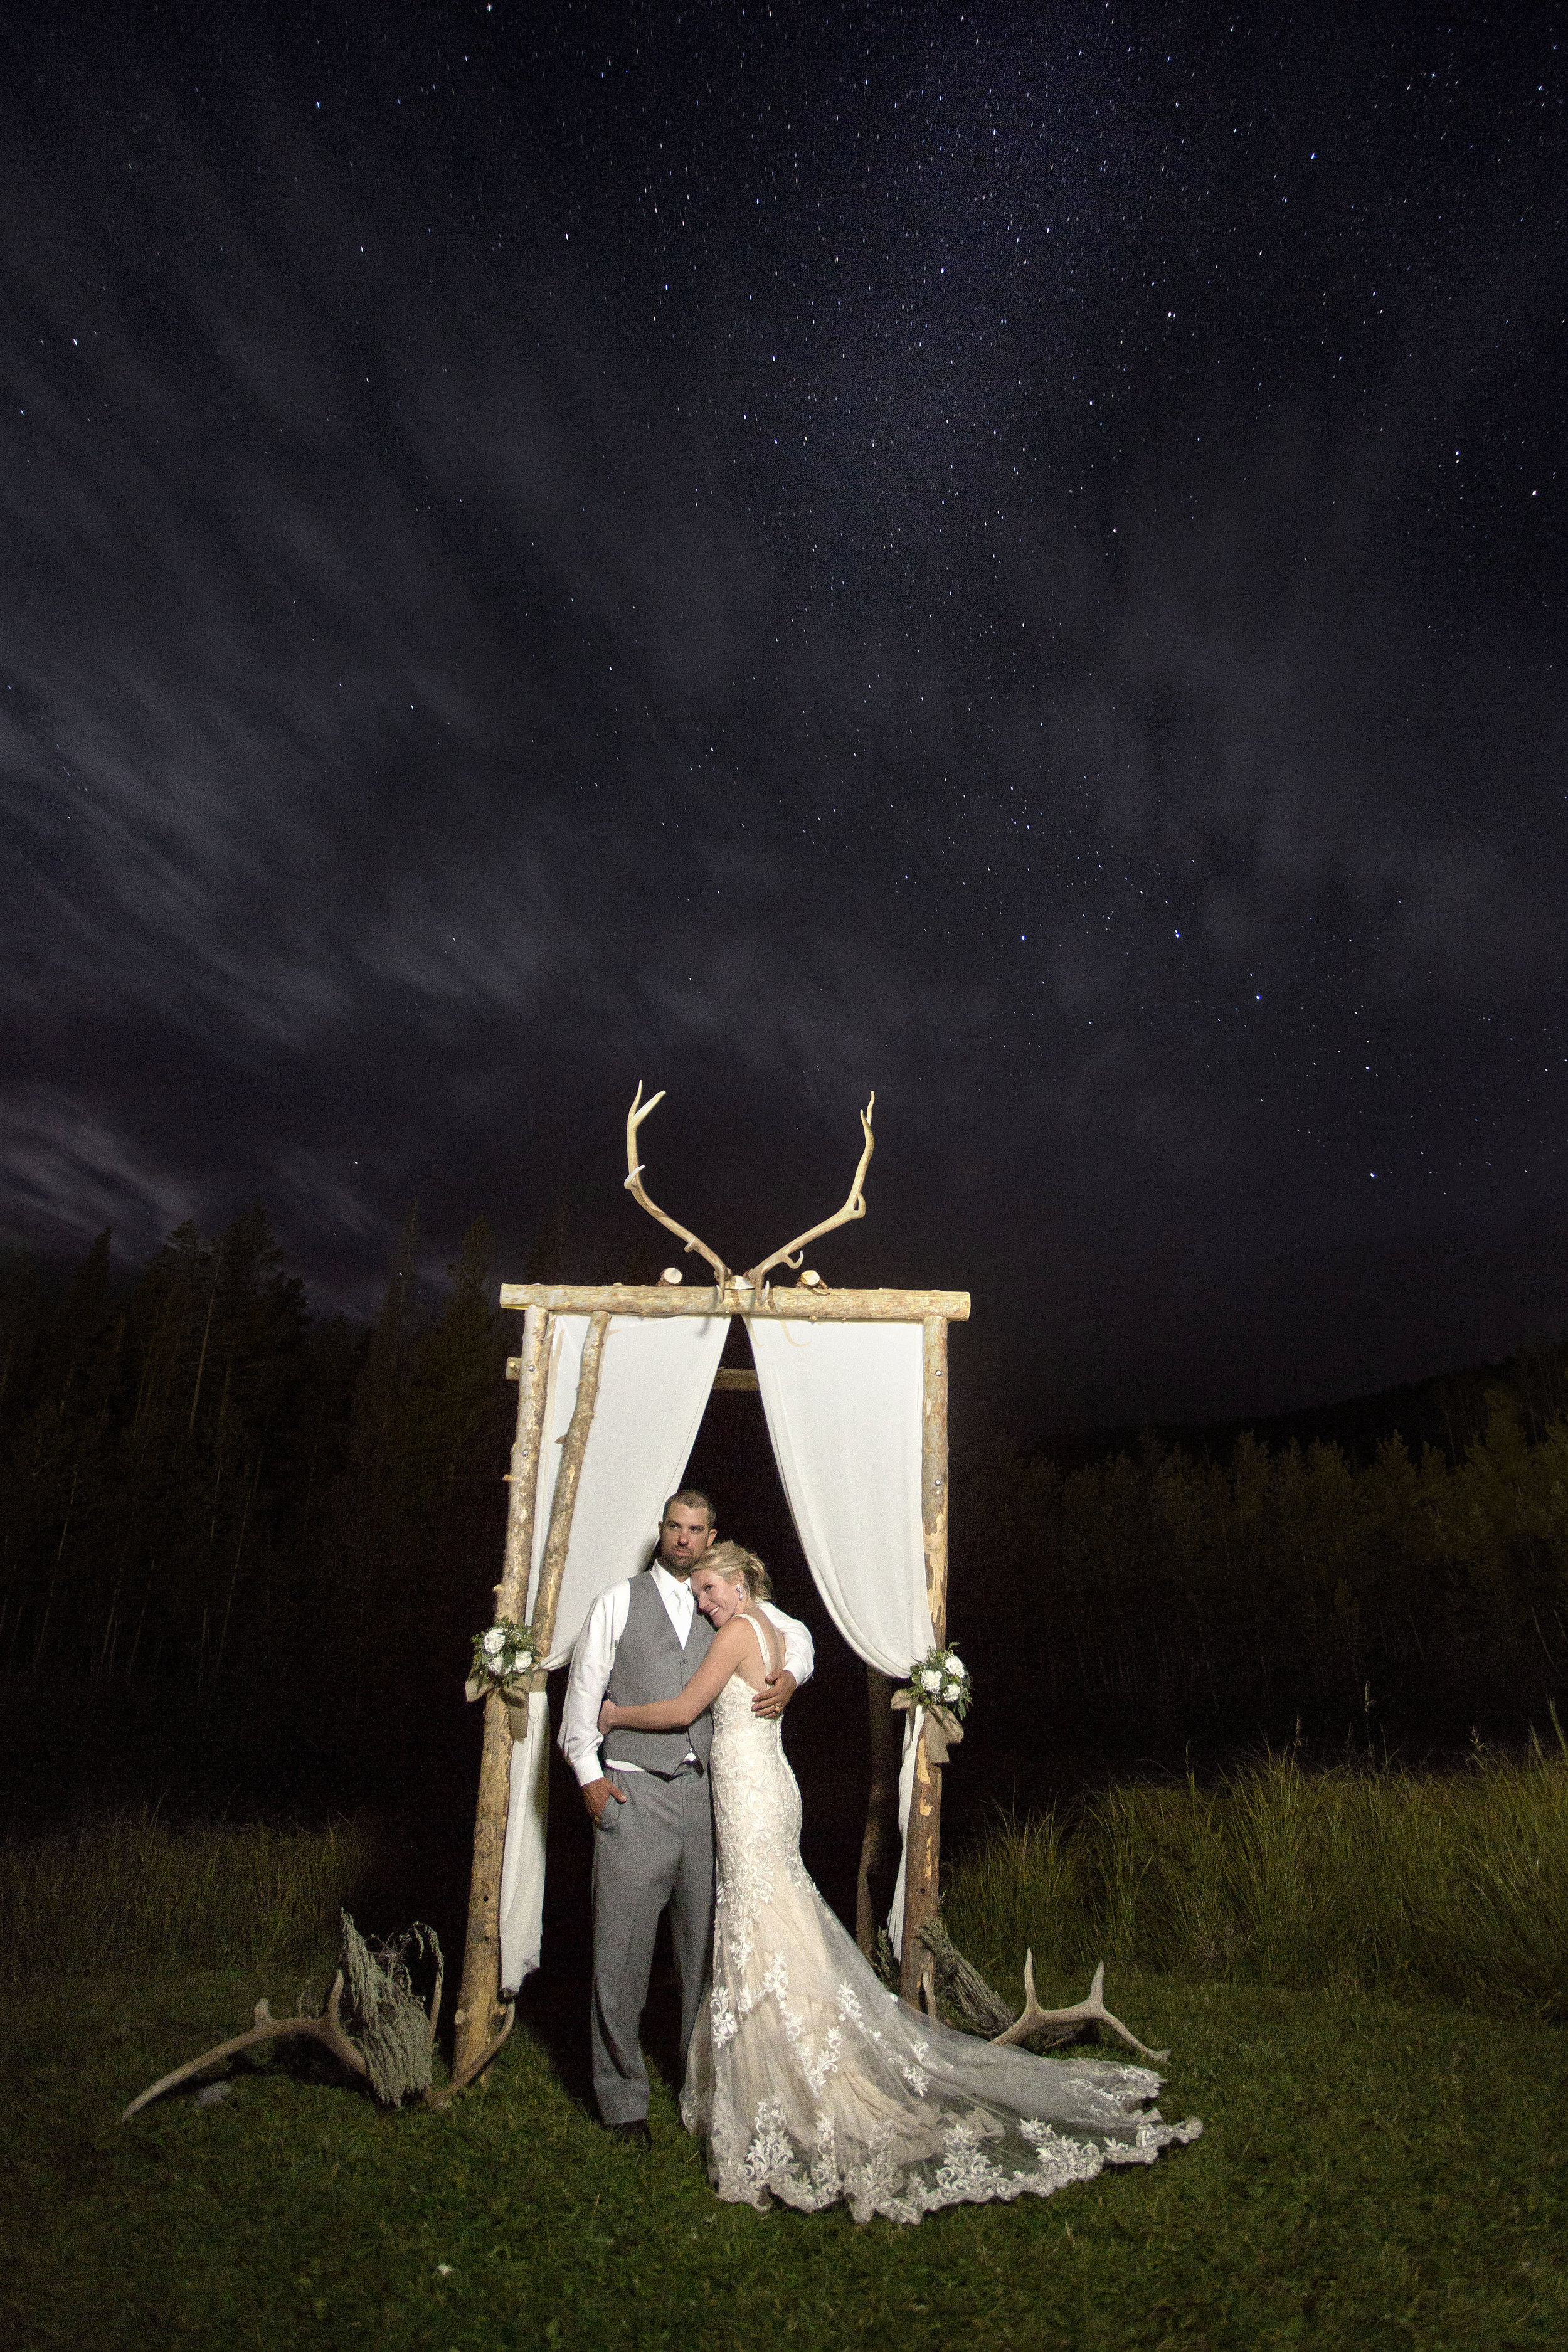 Wedding Night Portrait